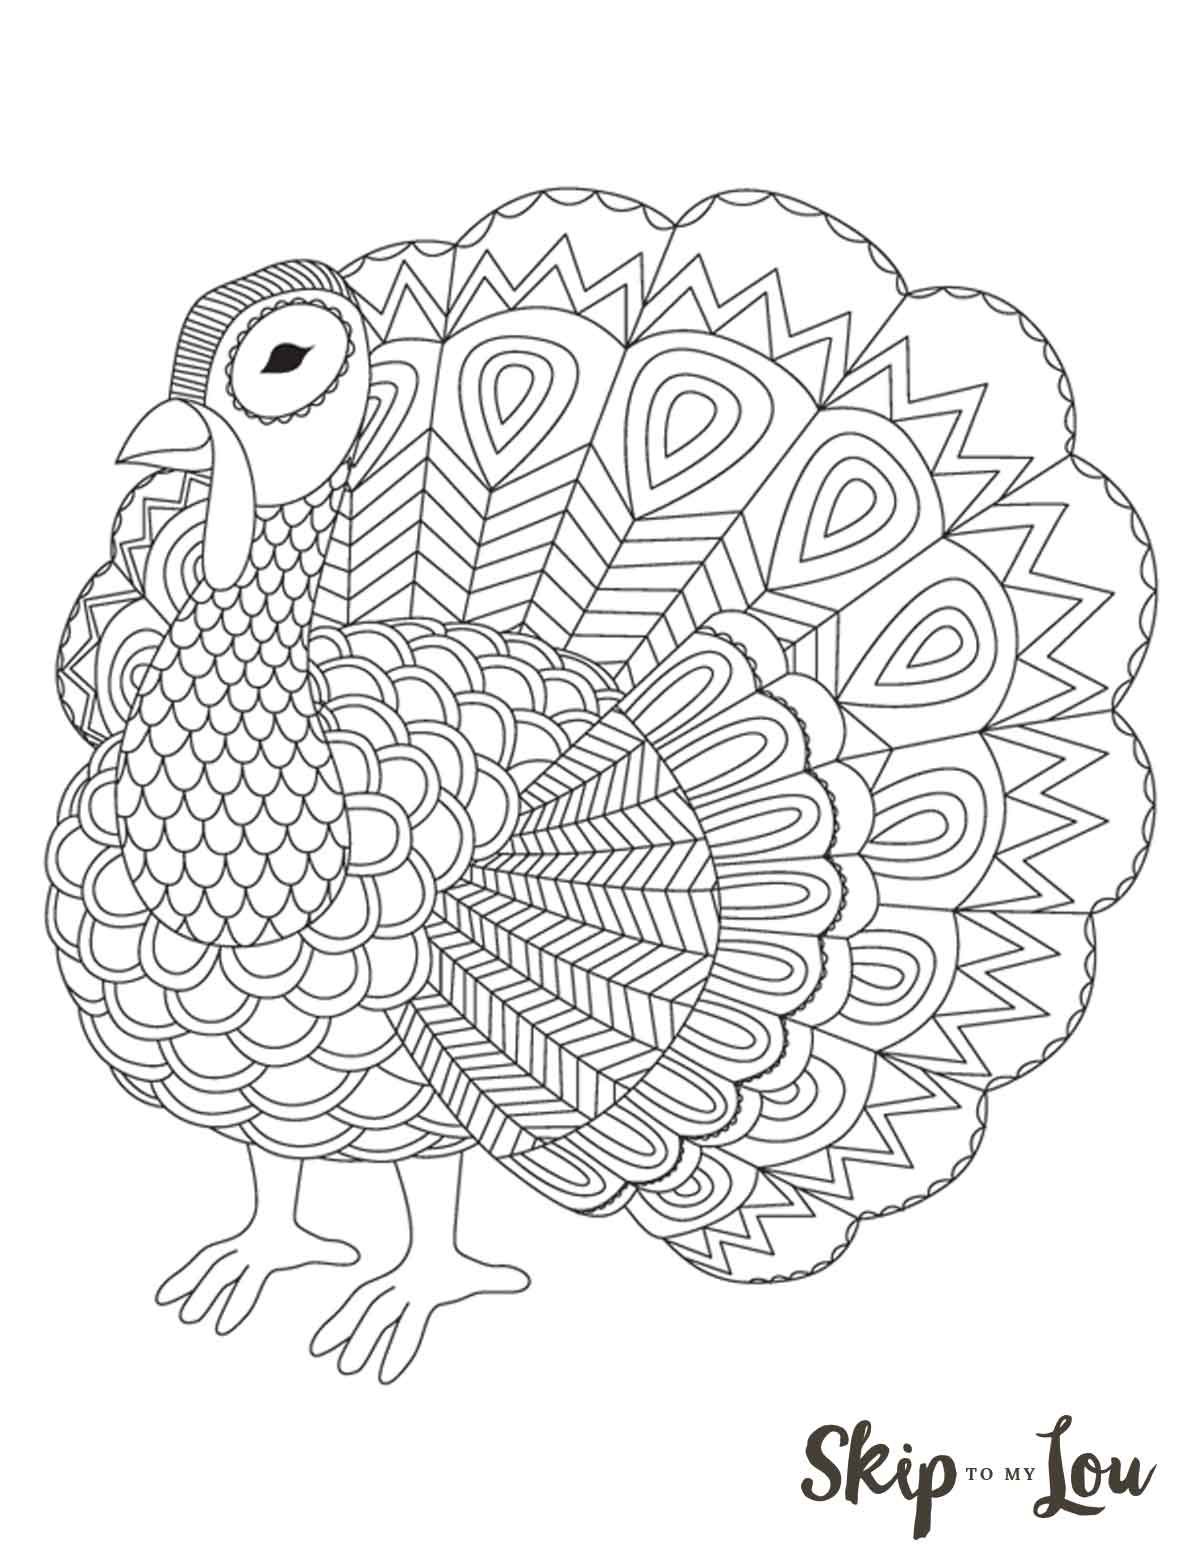 Thanksgiving day coloring pages for kids vegetables, printable ... | 1553x1200